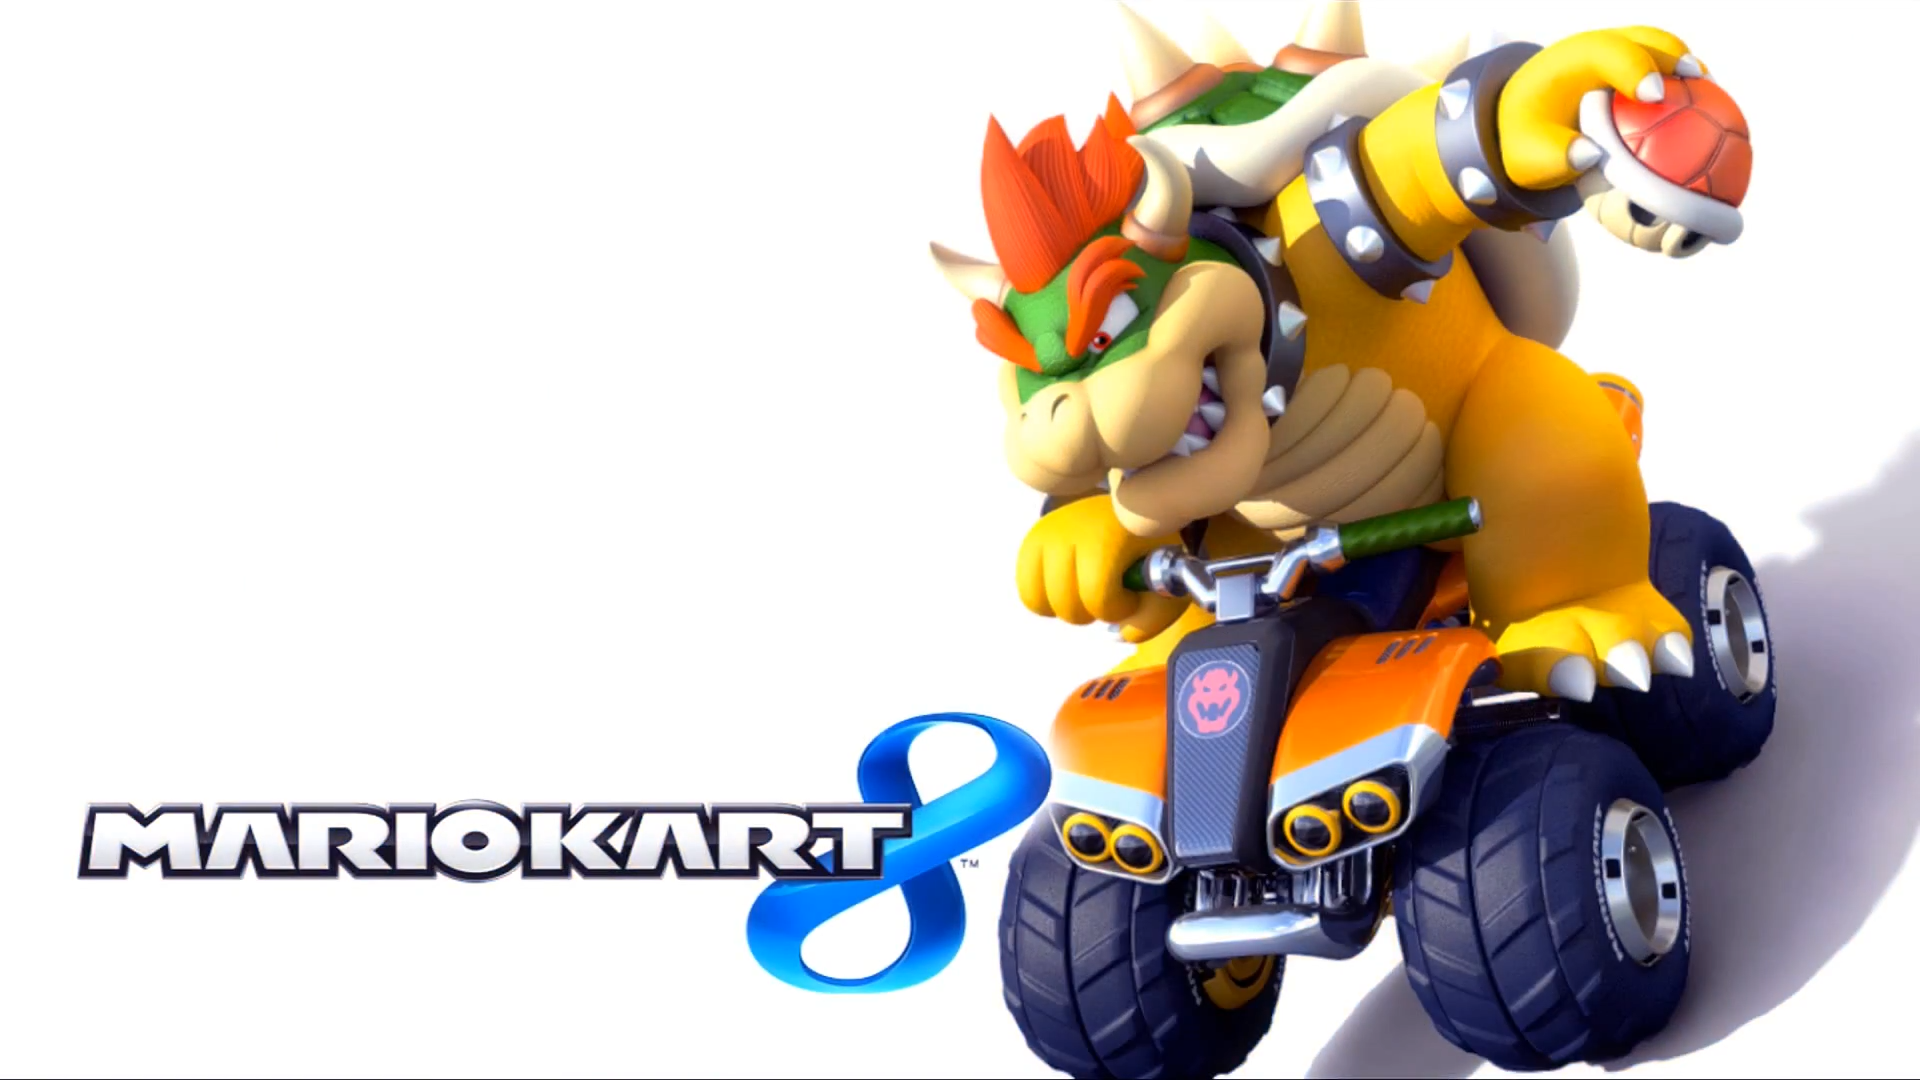 image mario kart 8 title screen bowser png mario kart racing wiki fandom powered by wikia. Black Bedroom Furniture Sets. Home Design Ideas